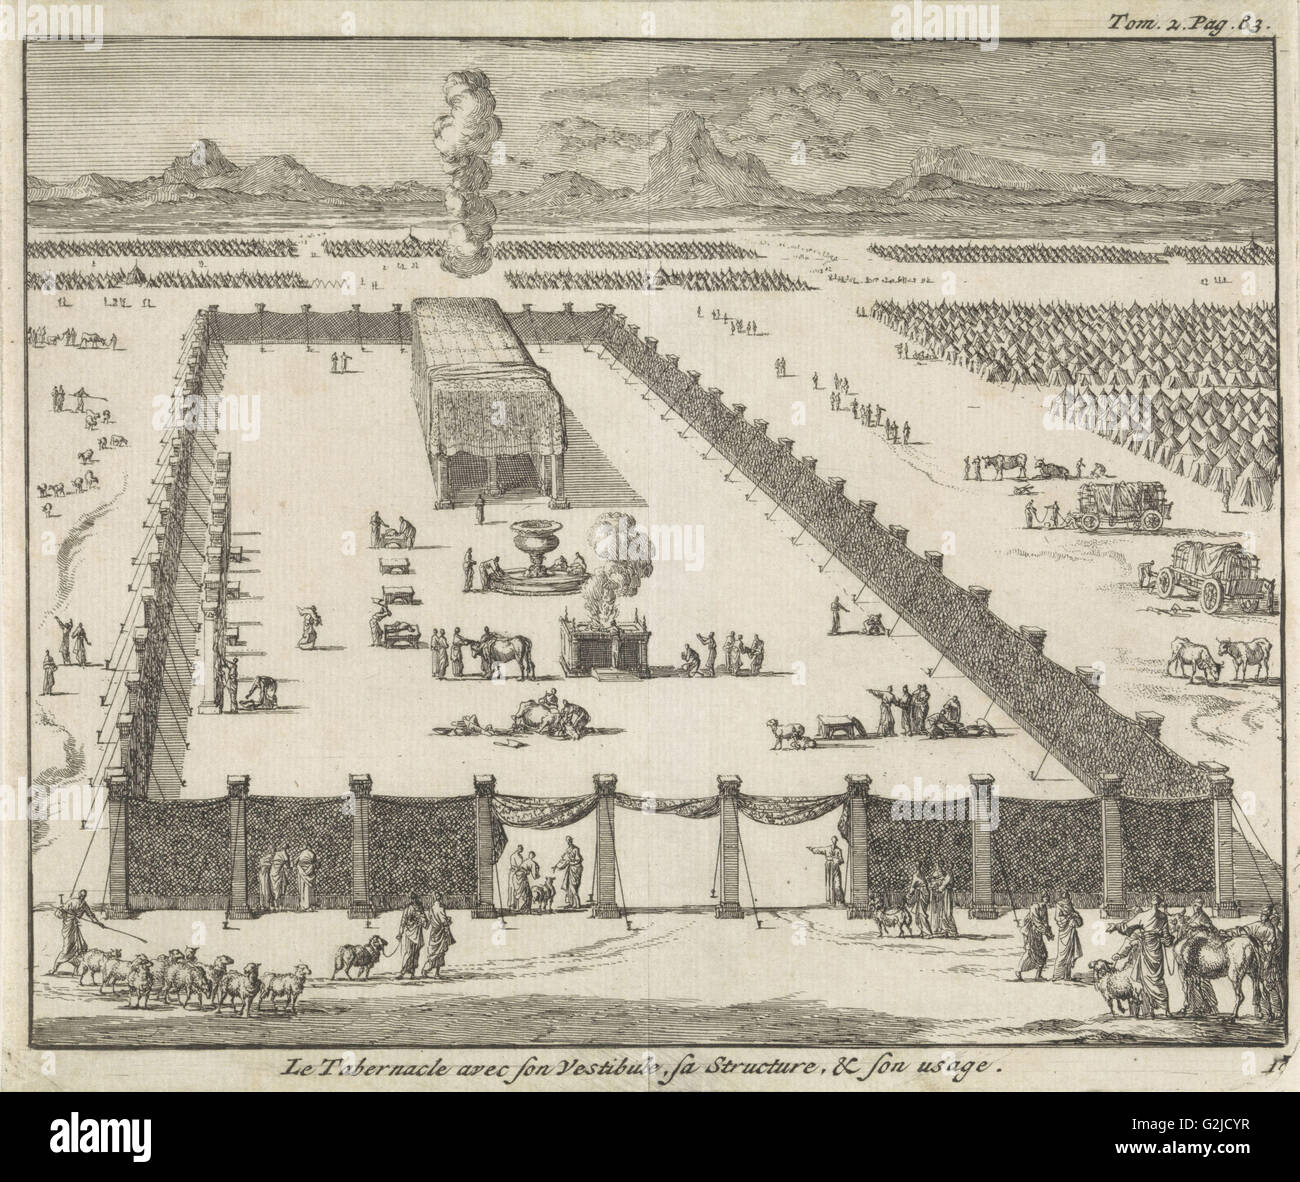 View of the court and the Tabernacle, Jan Luyken, Pieter Mortier, 1705 - Stock Image